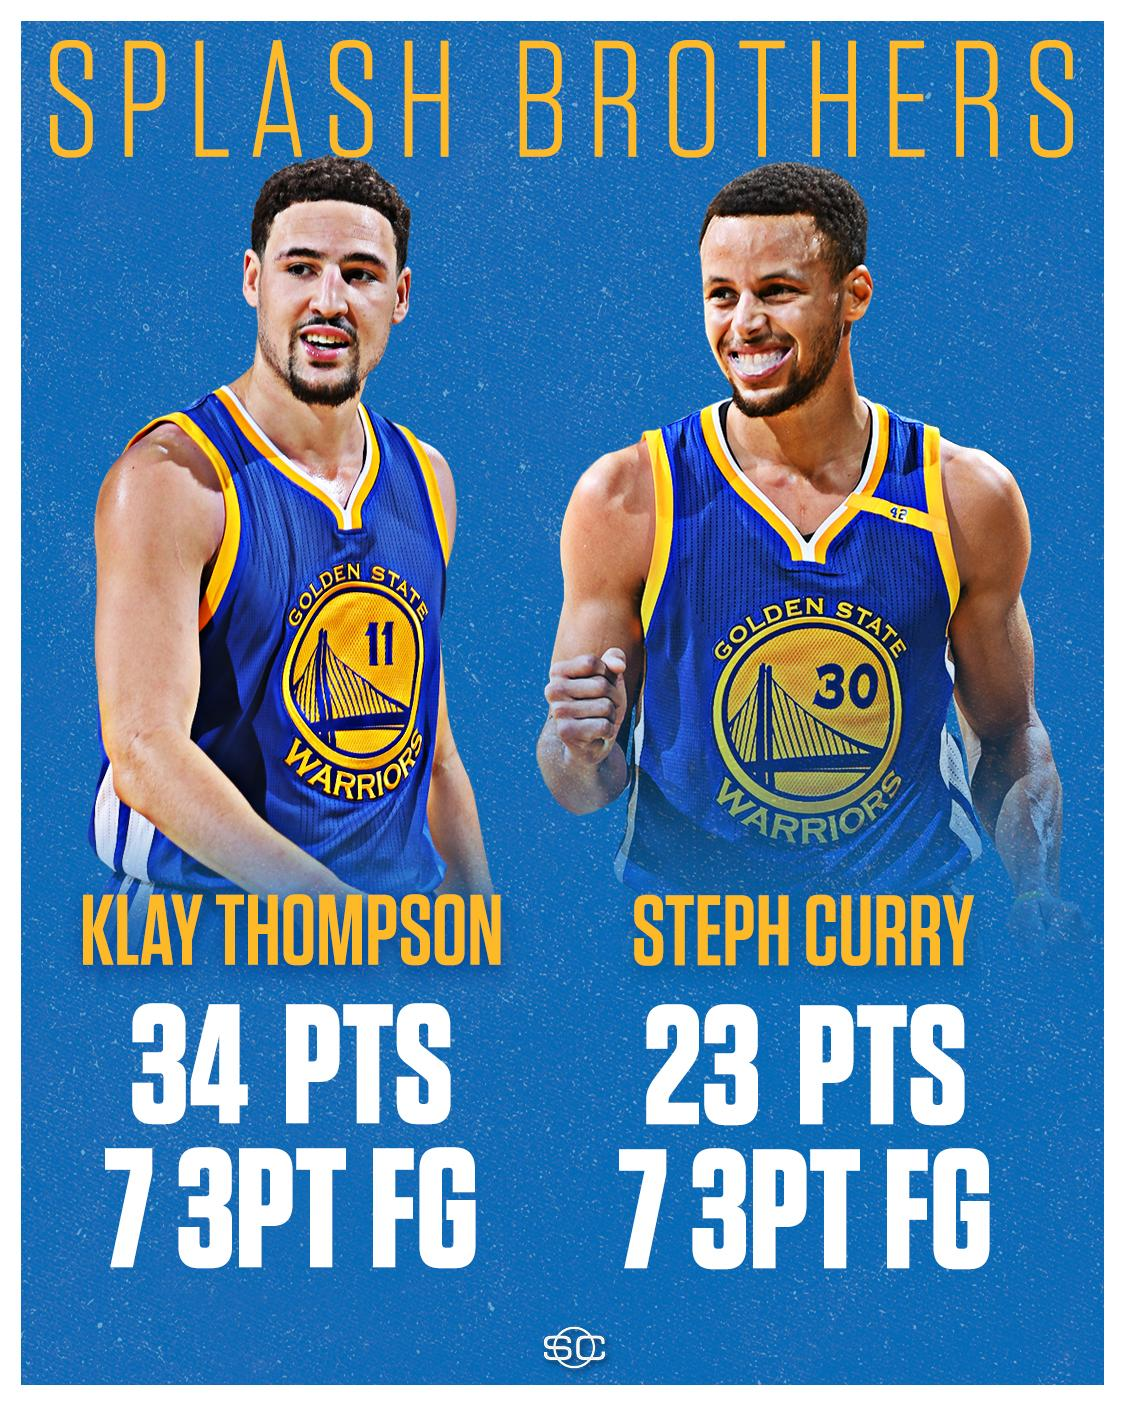 Steph Curry and Klay Thompson: 57 Pts OKC's starting five: 53 Pts https://t.co/rIOR3c3Sfk